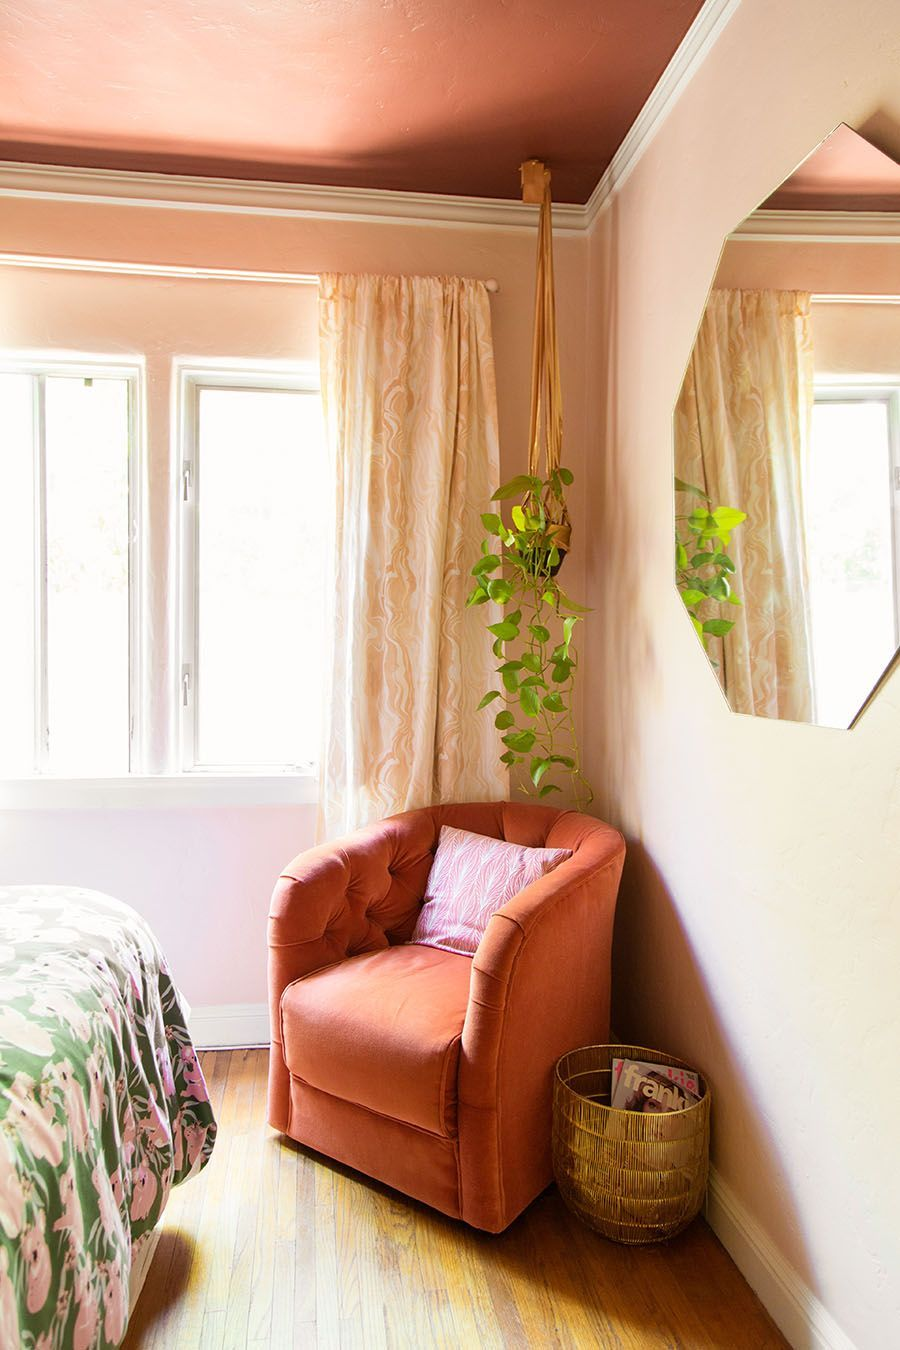 Village home interior design a colorful atwater village home for two photographers u design